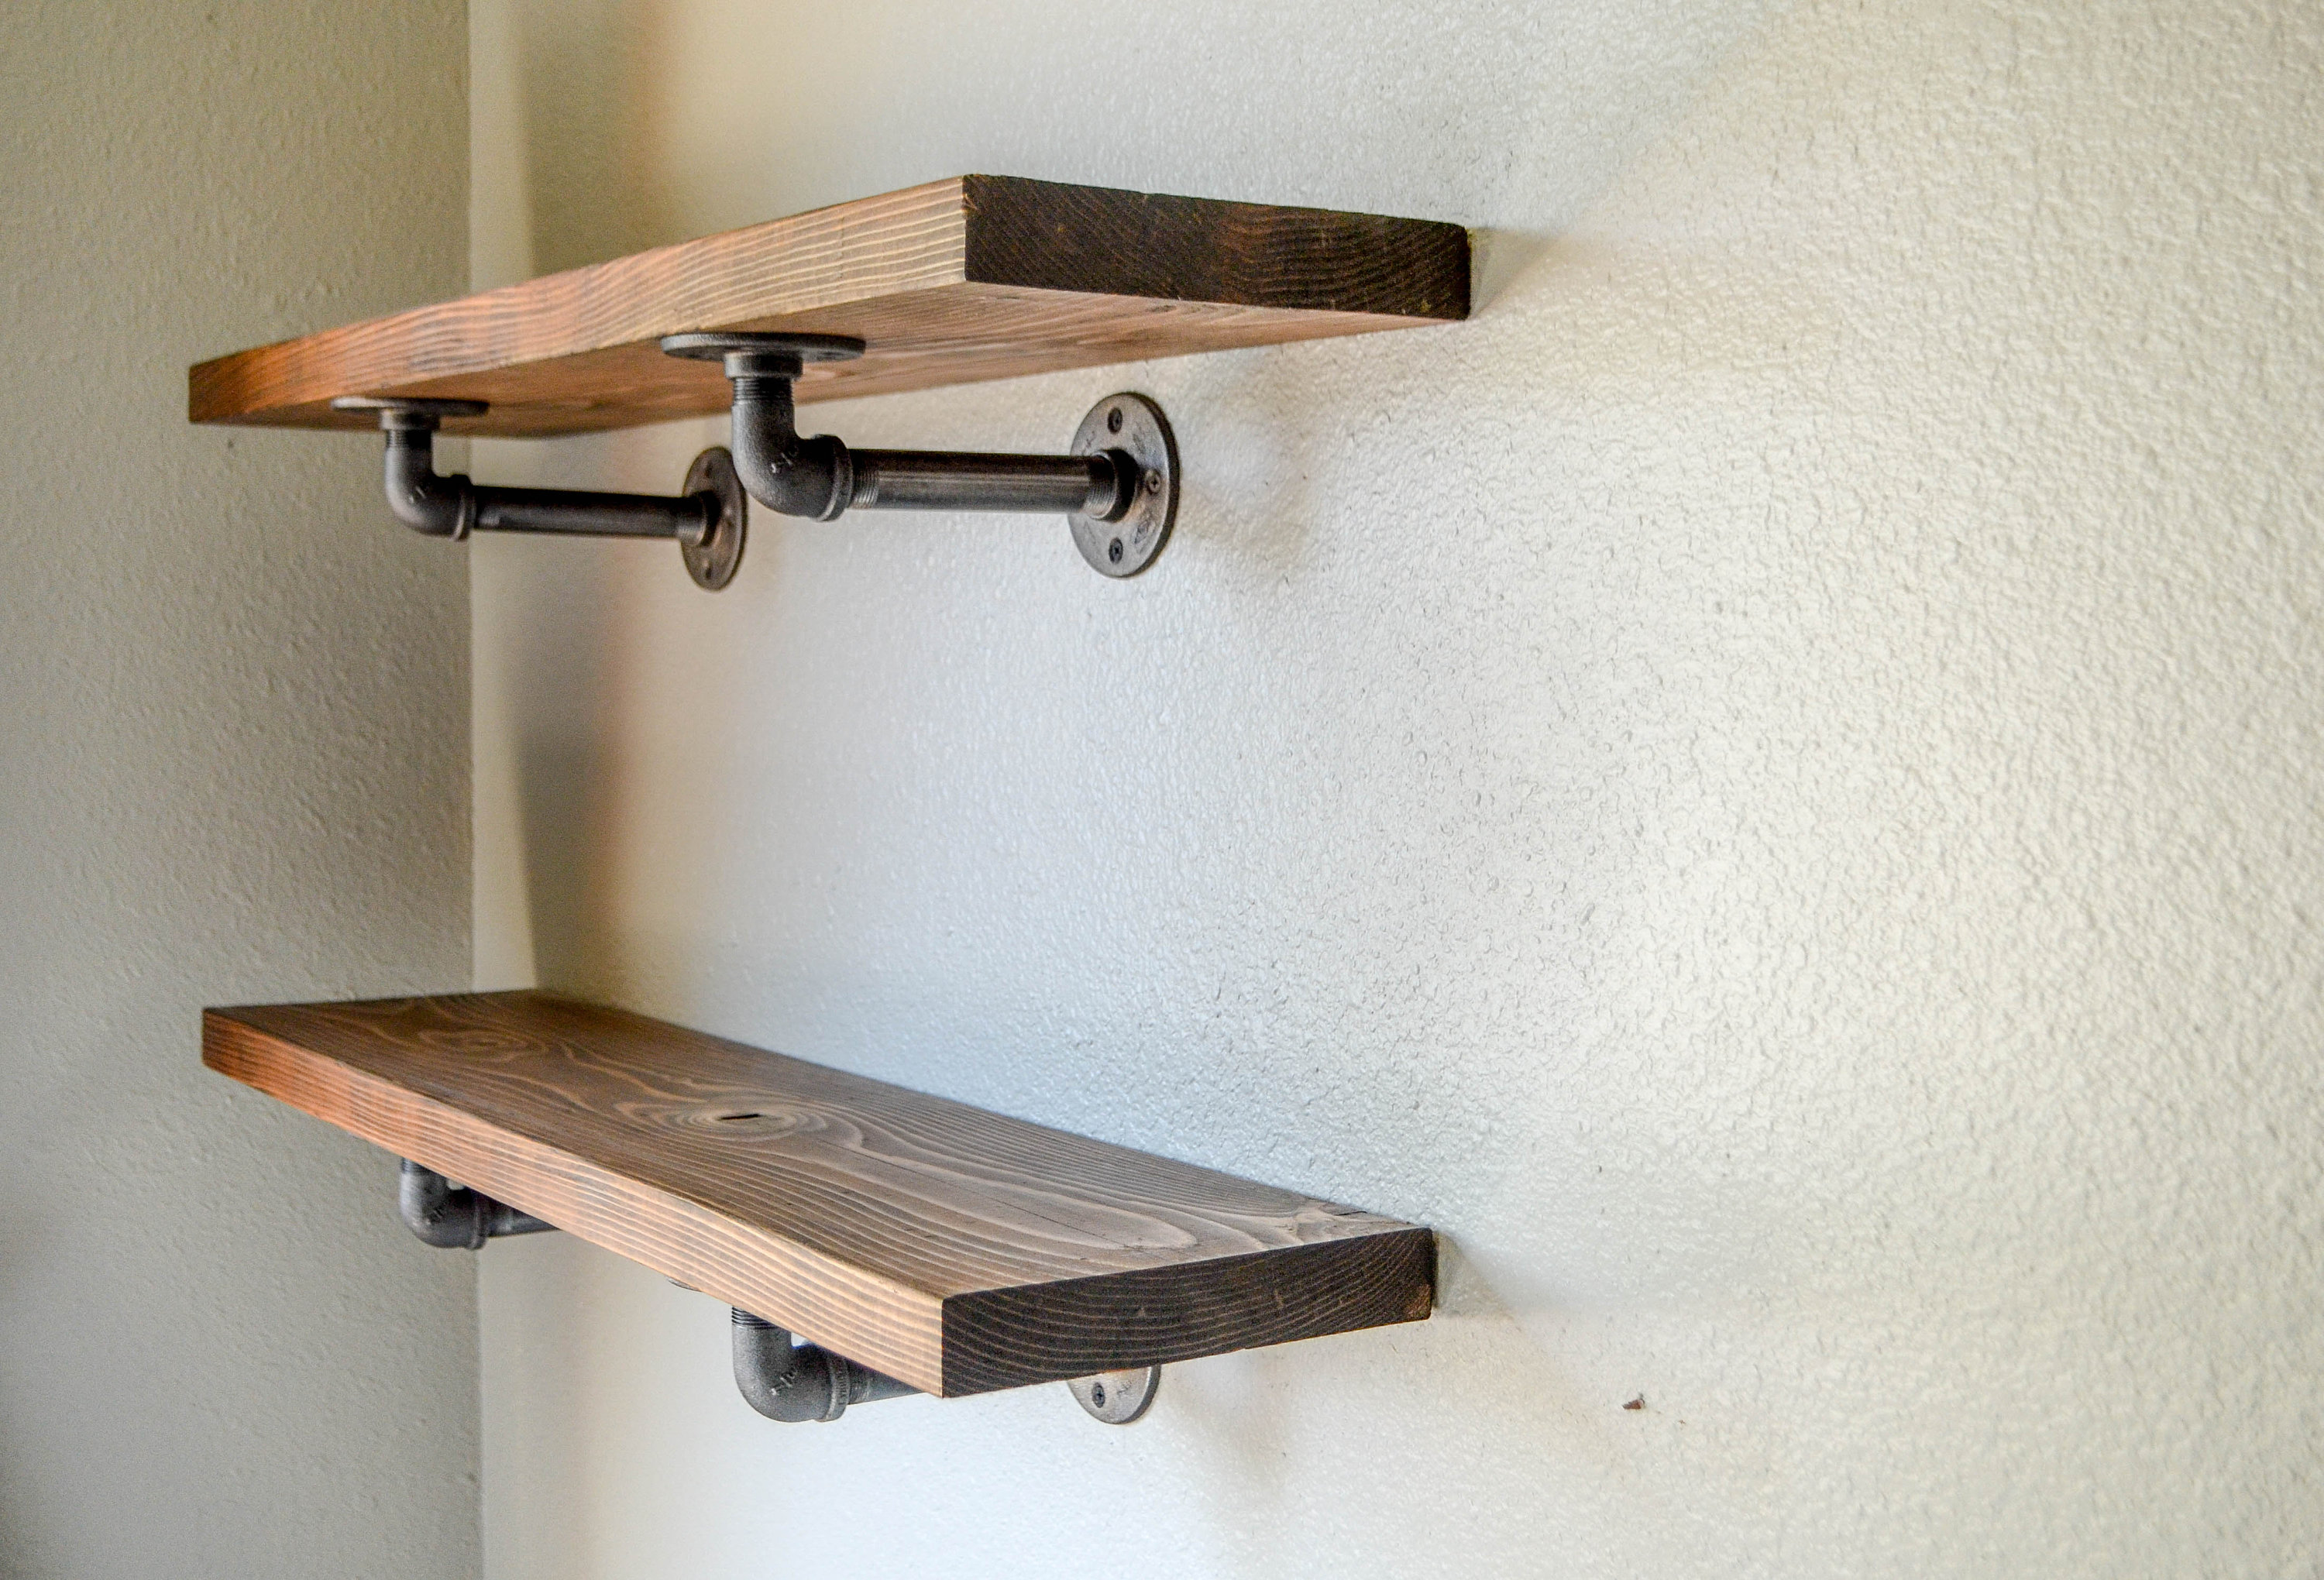 industrial pipe shelving shelf open farmhouse decor floating shelves kitchen dining fullxfull xmqt with pipes corner ladder kmart palmerston north hours white oak wall great